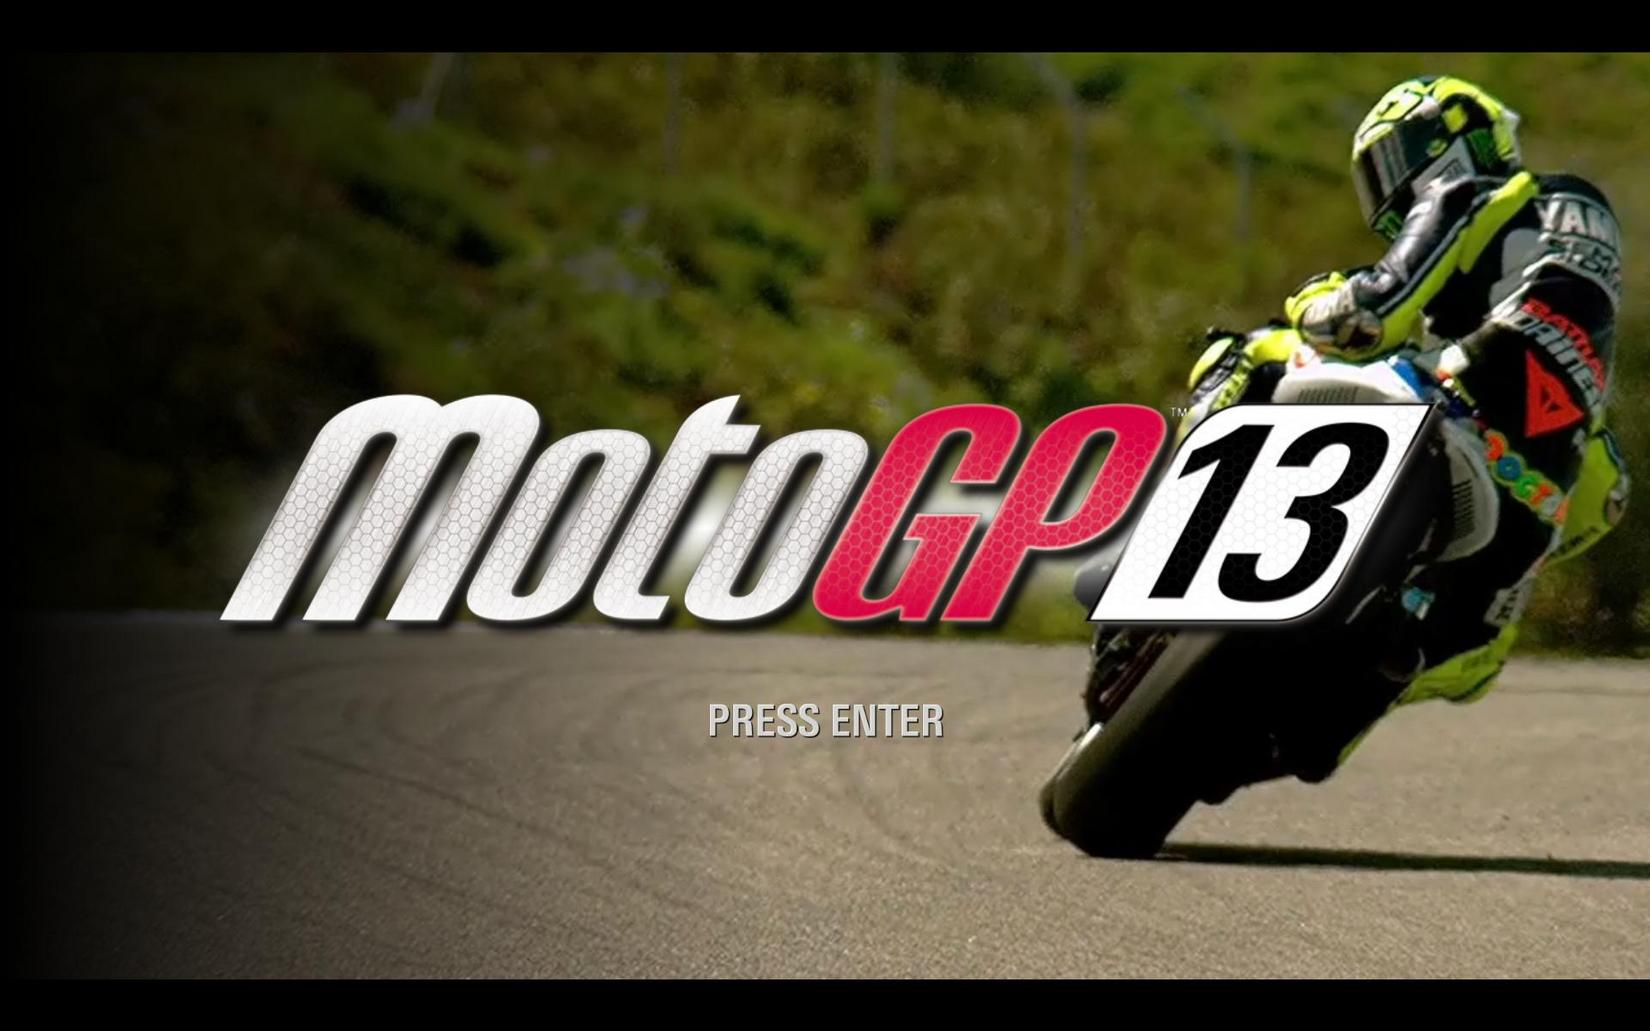 MotoGP 13 (Steam Gift / CIS)